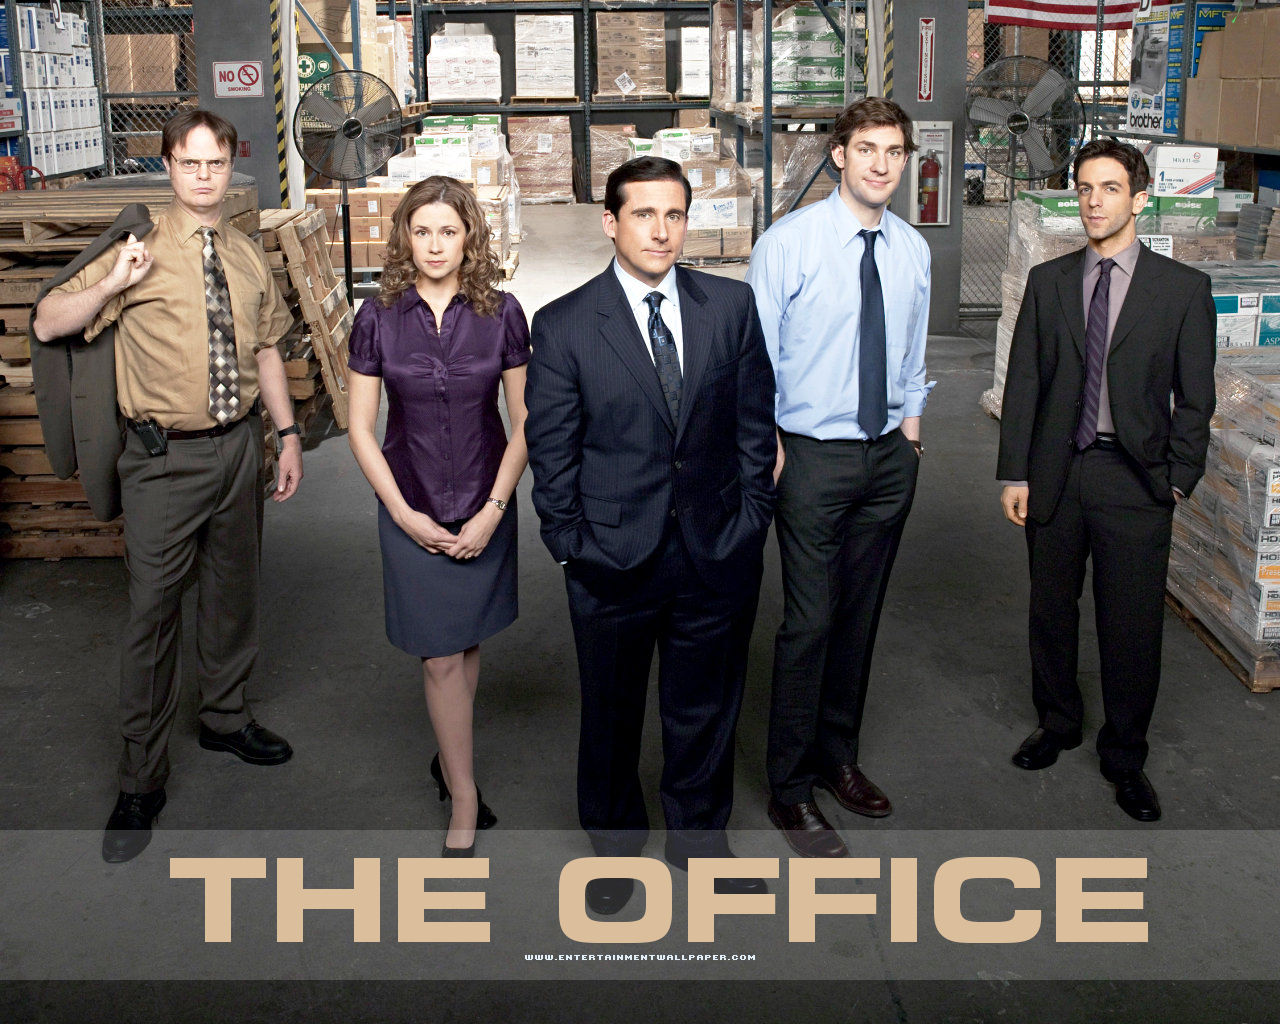 the_office_wallpaper_1280x1024_2